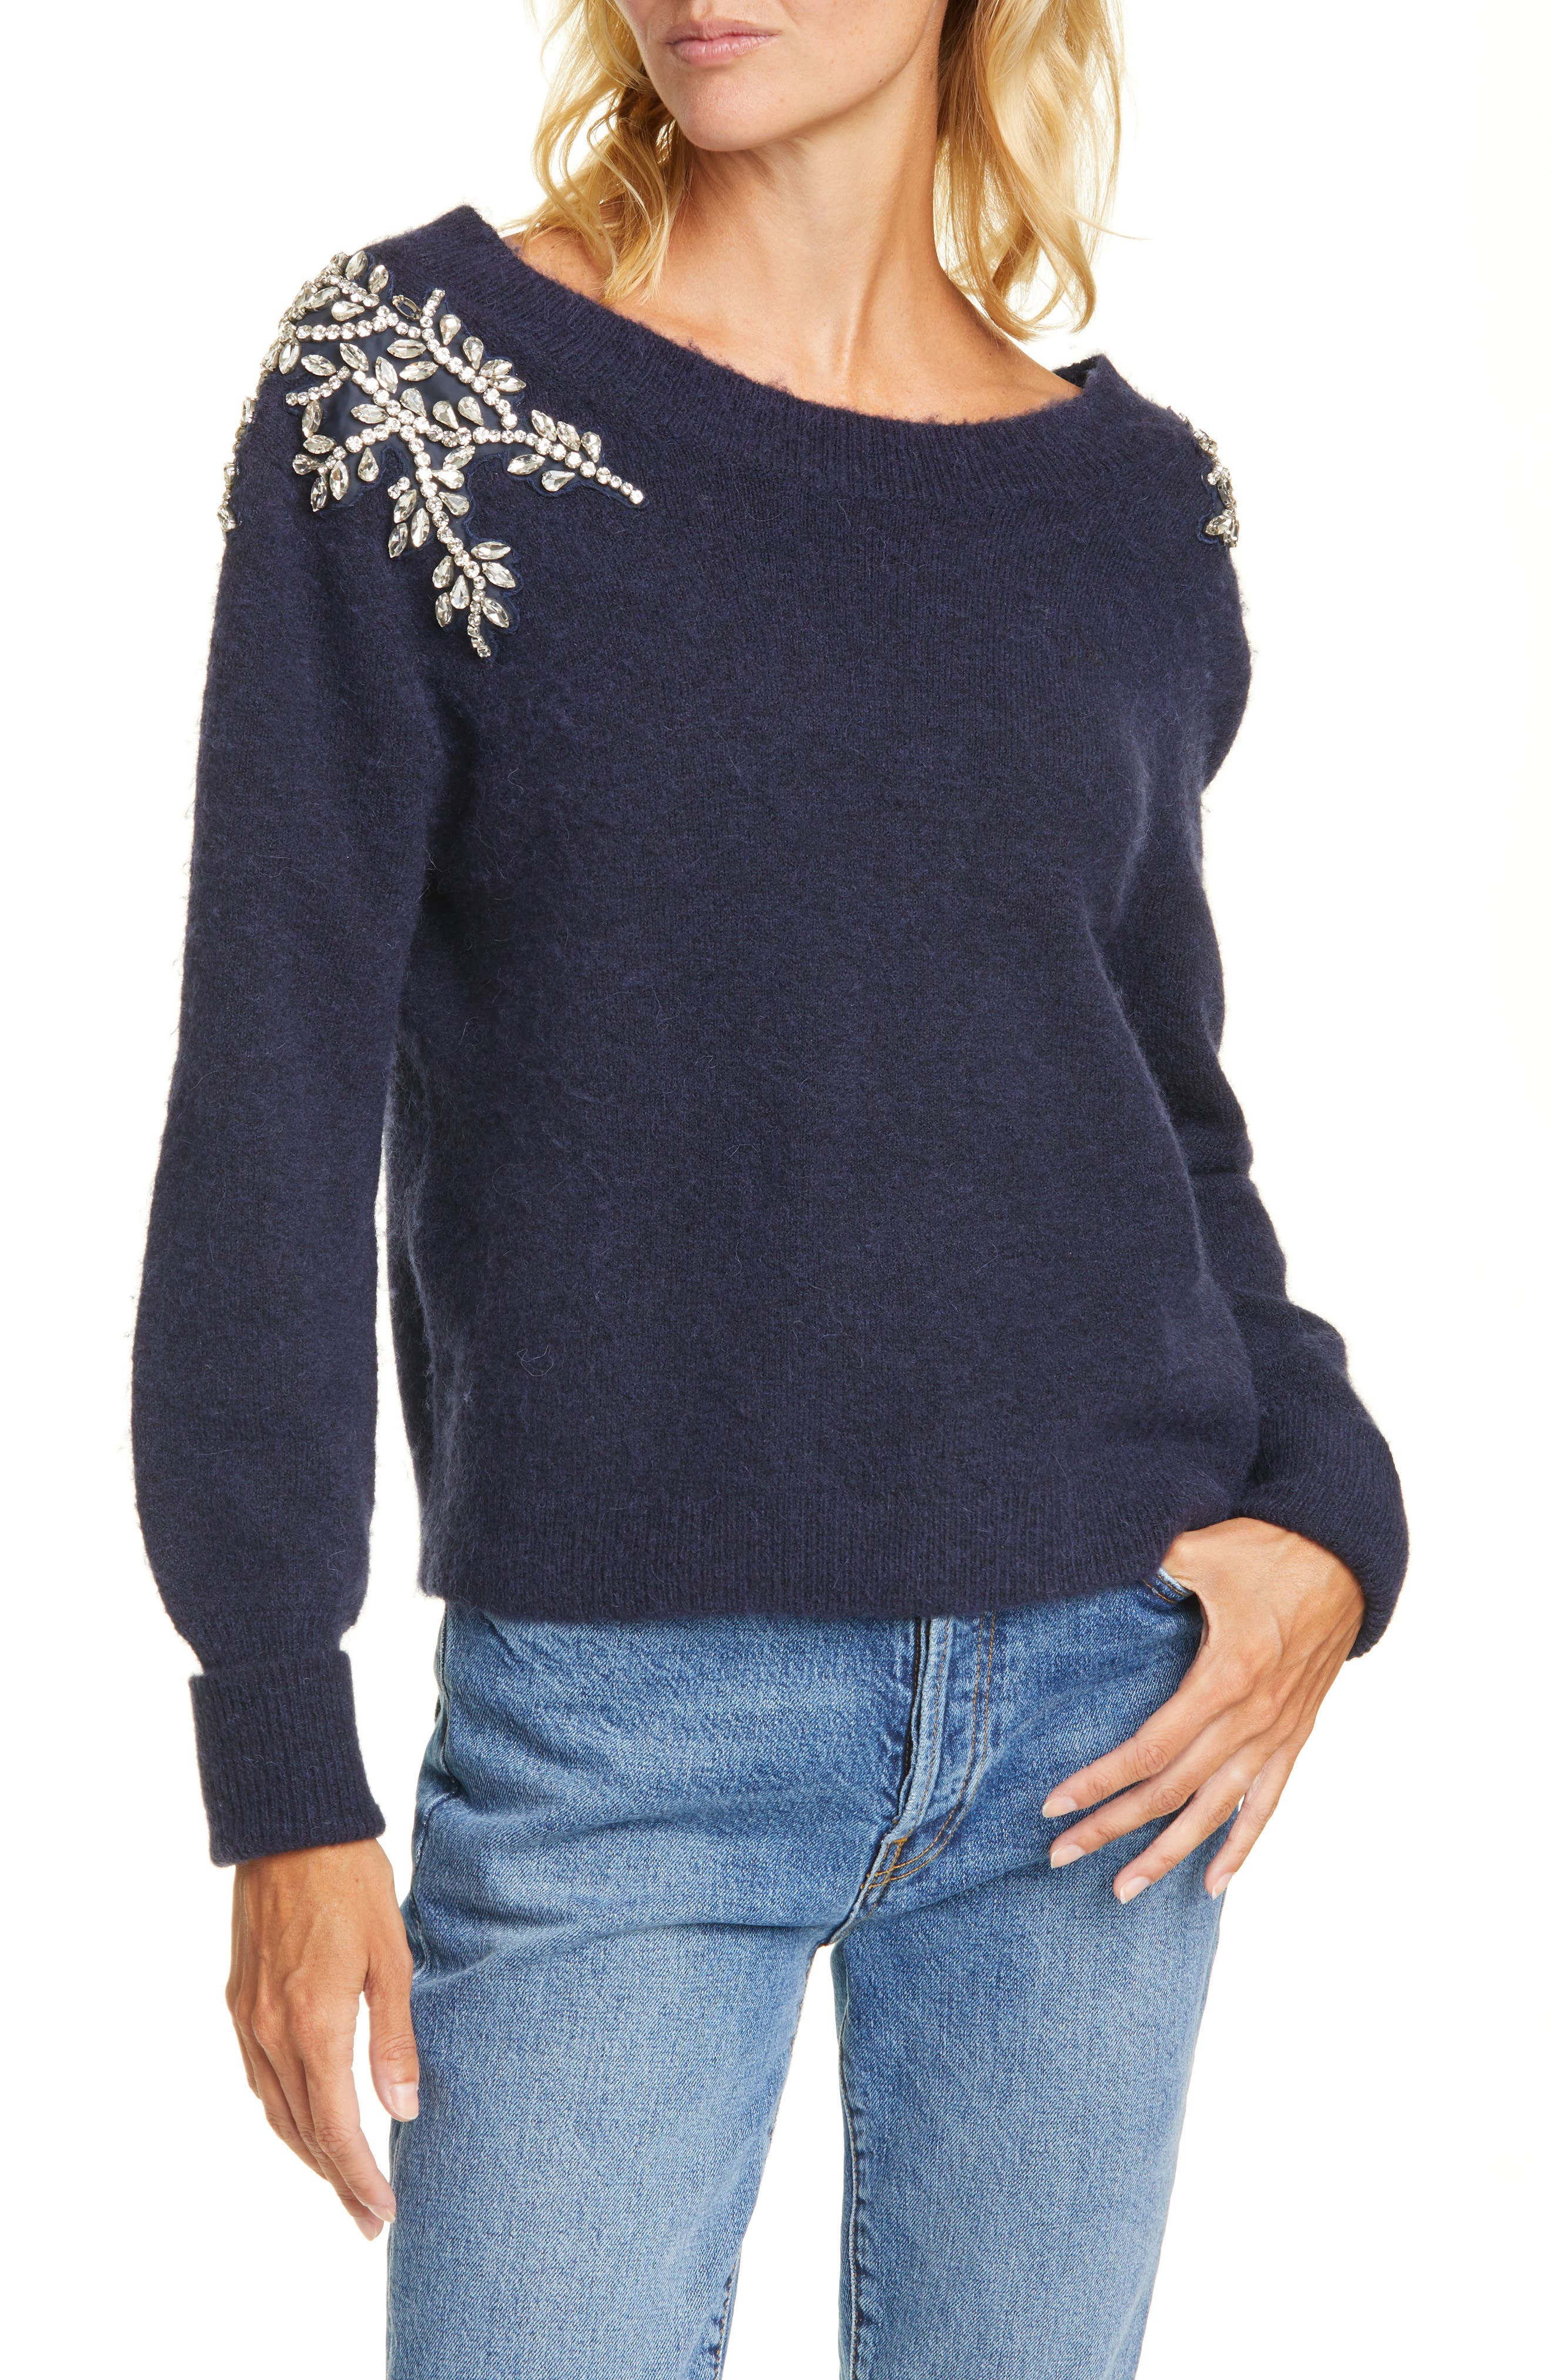 Veronica Beard Sweaters Valerie Embellished Sweater